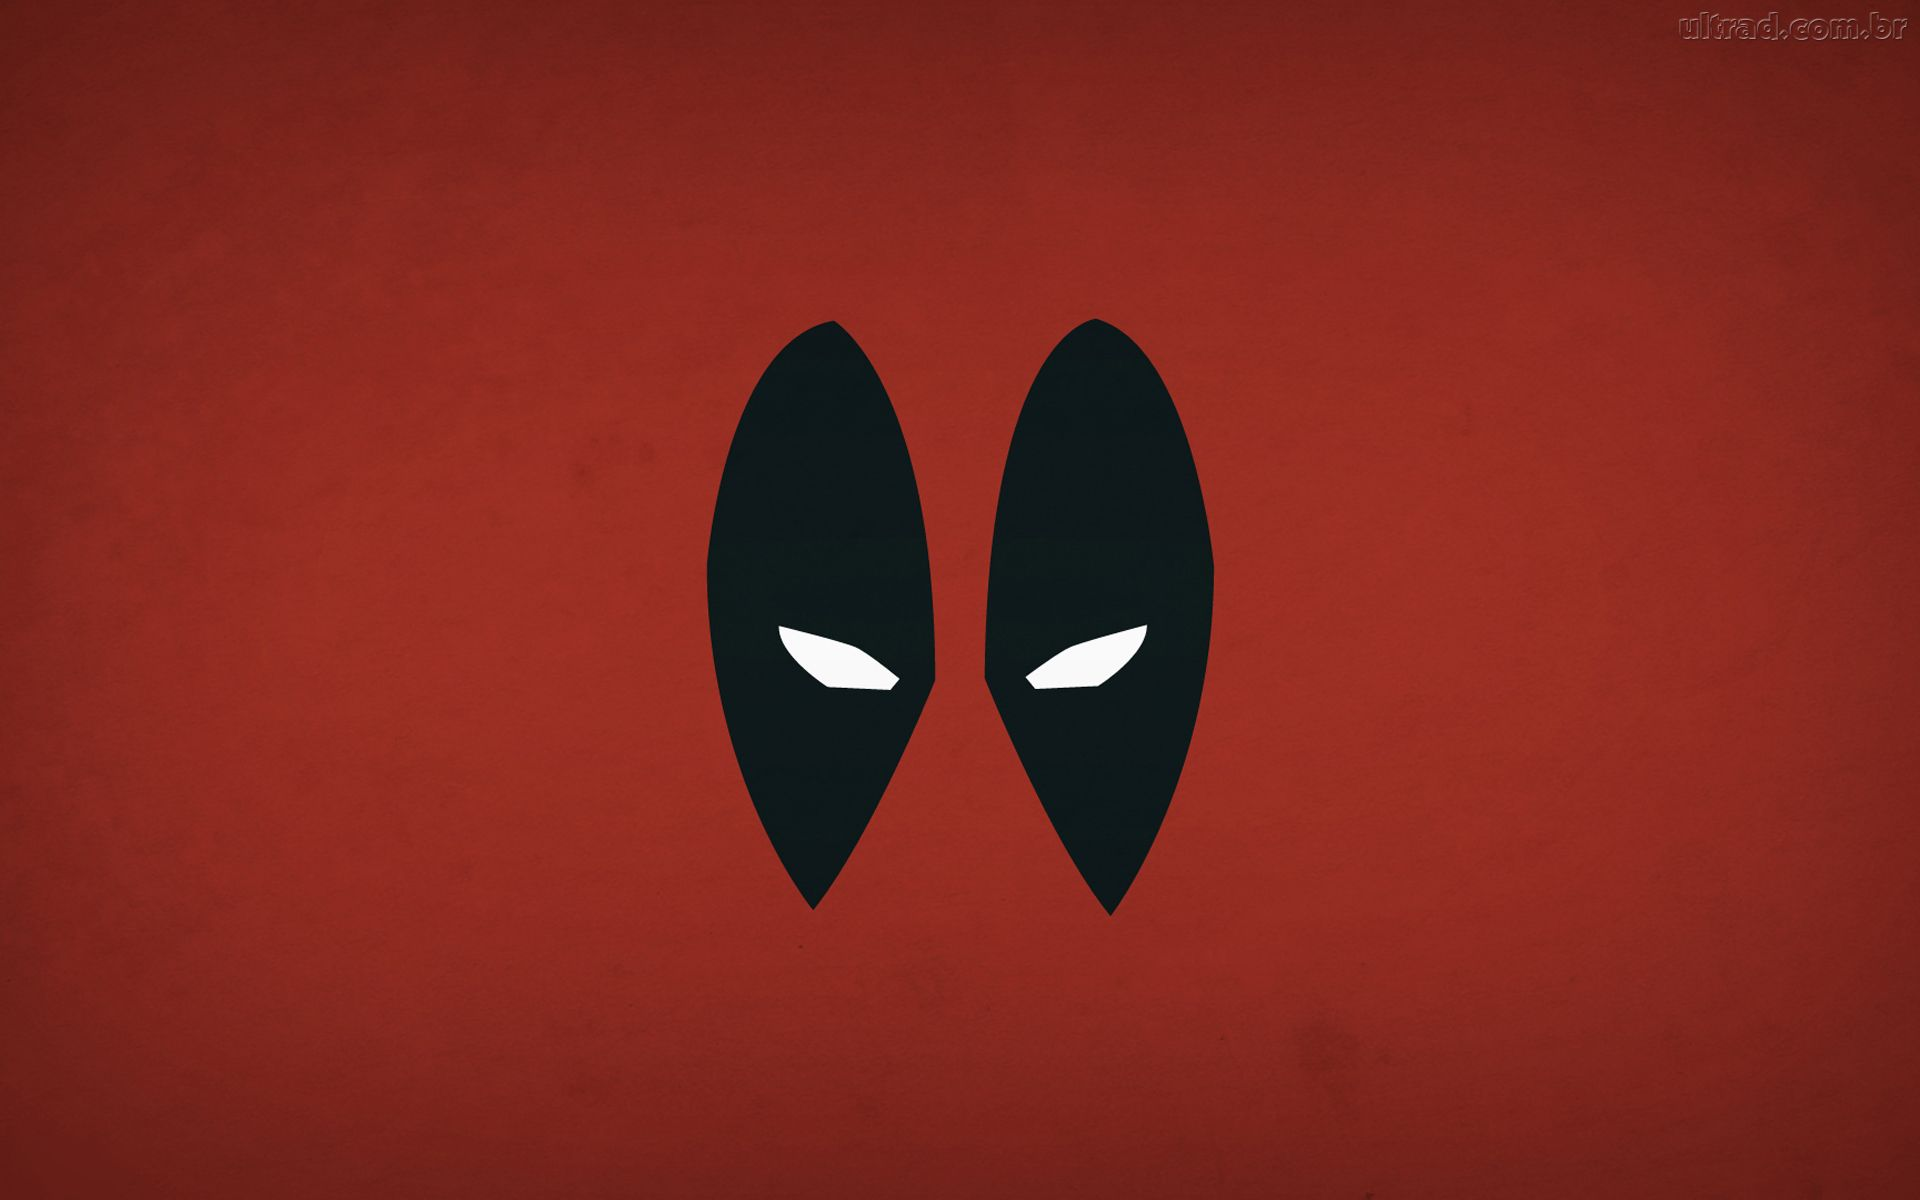 Deadpool clipart head. Wallpapers widescreen of wp